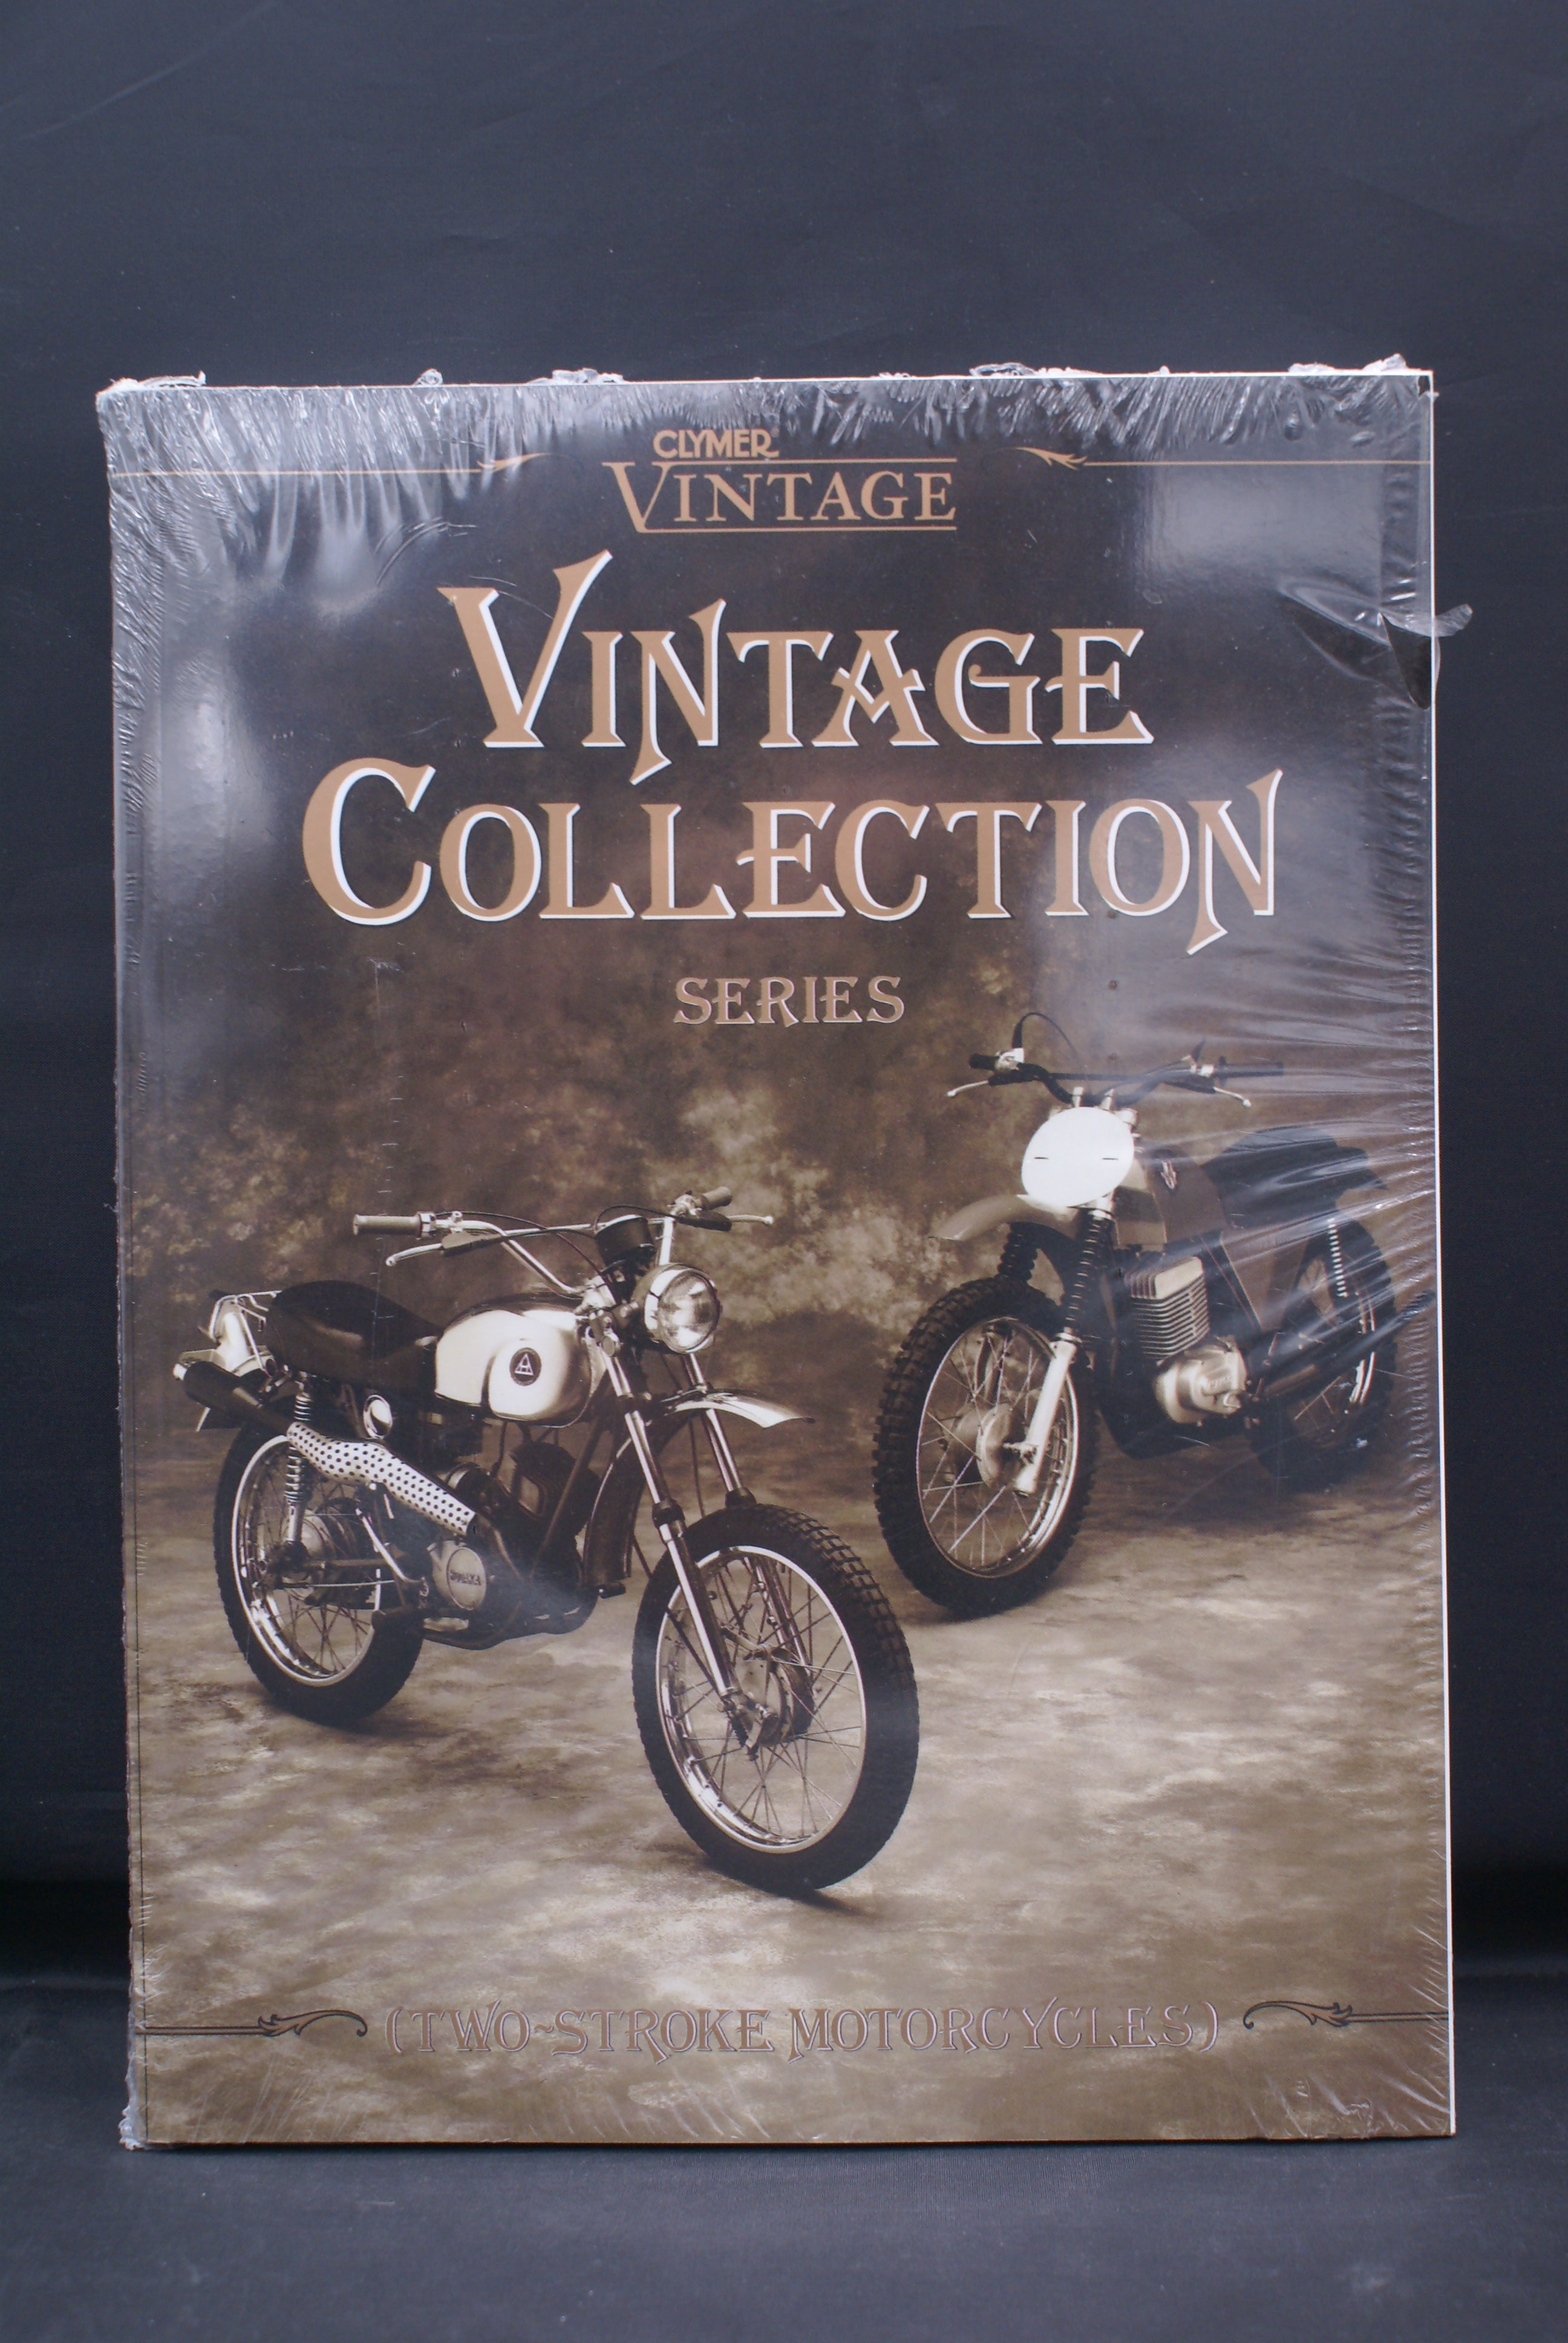 Clymer Vintage Collection, Two-Stroke